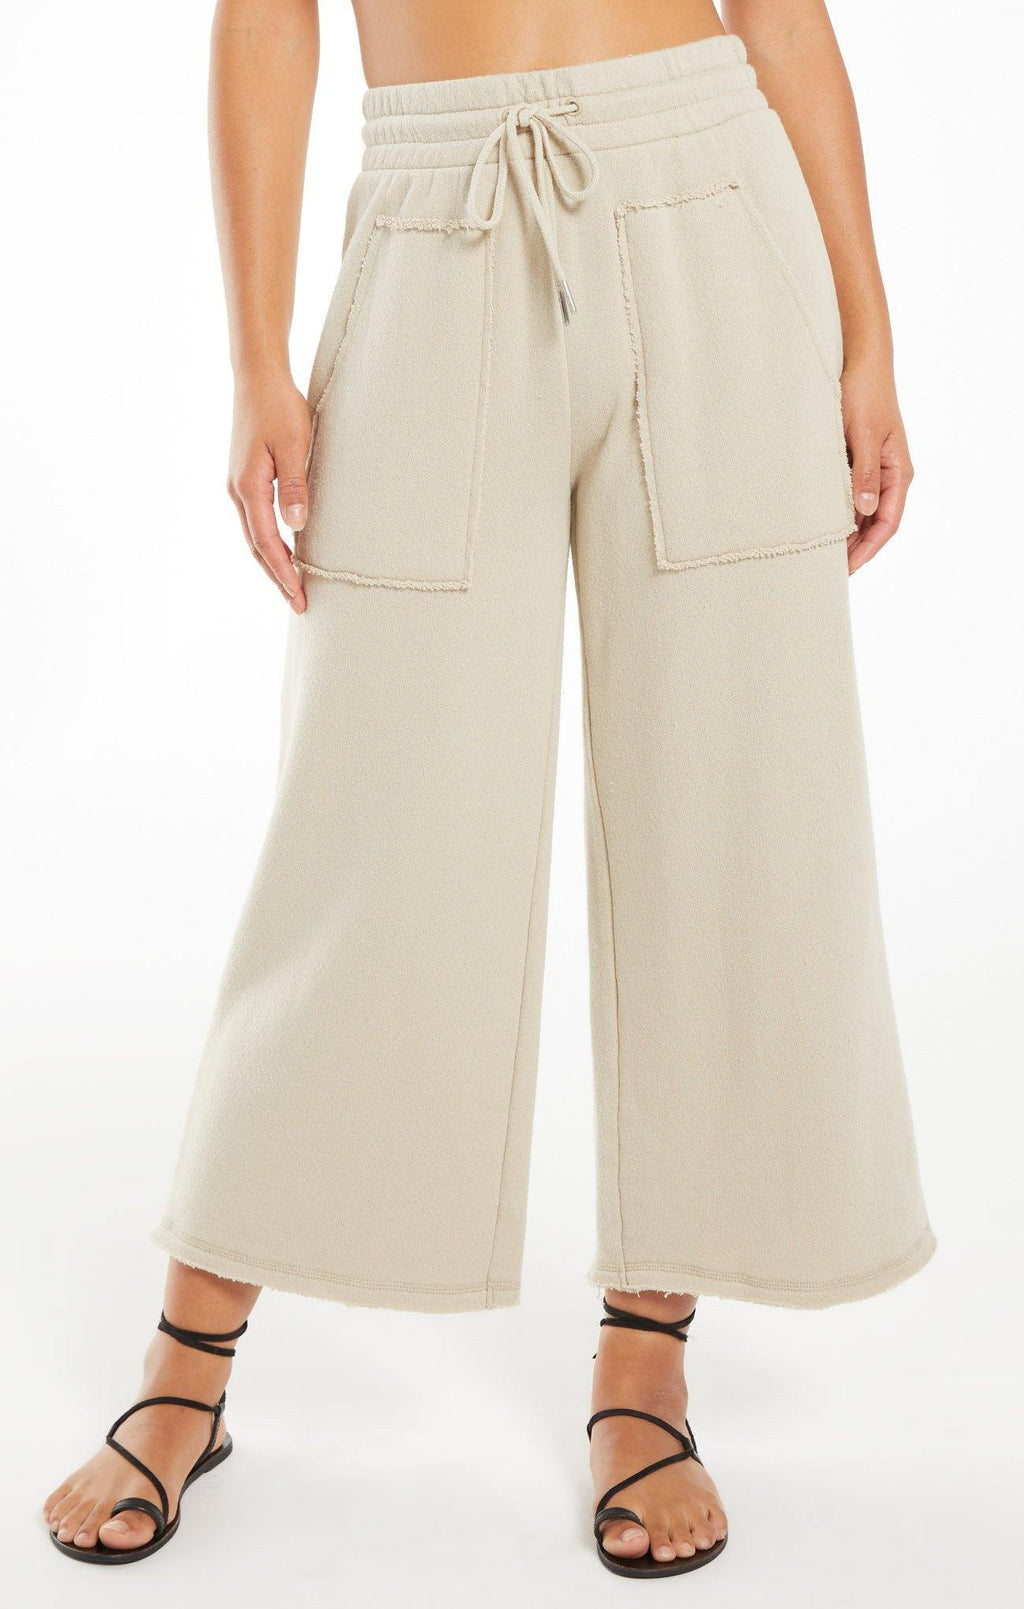 Z Supply Paloma Loop Terry Pant - Green Tea